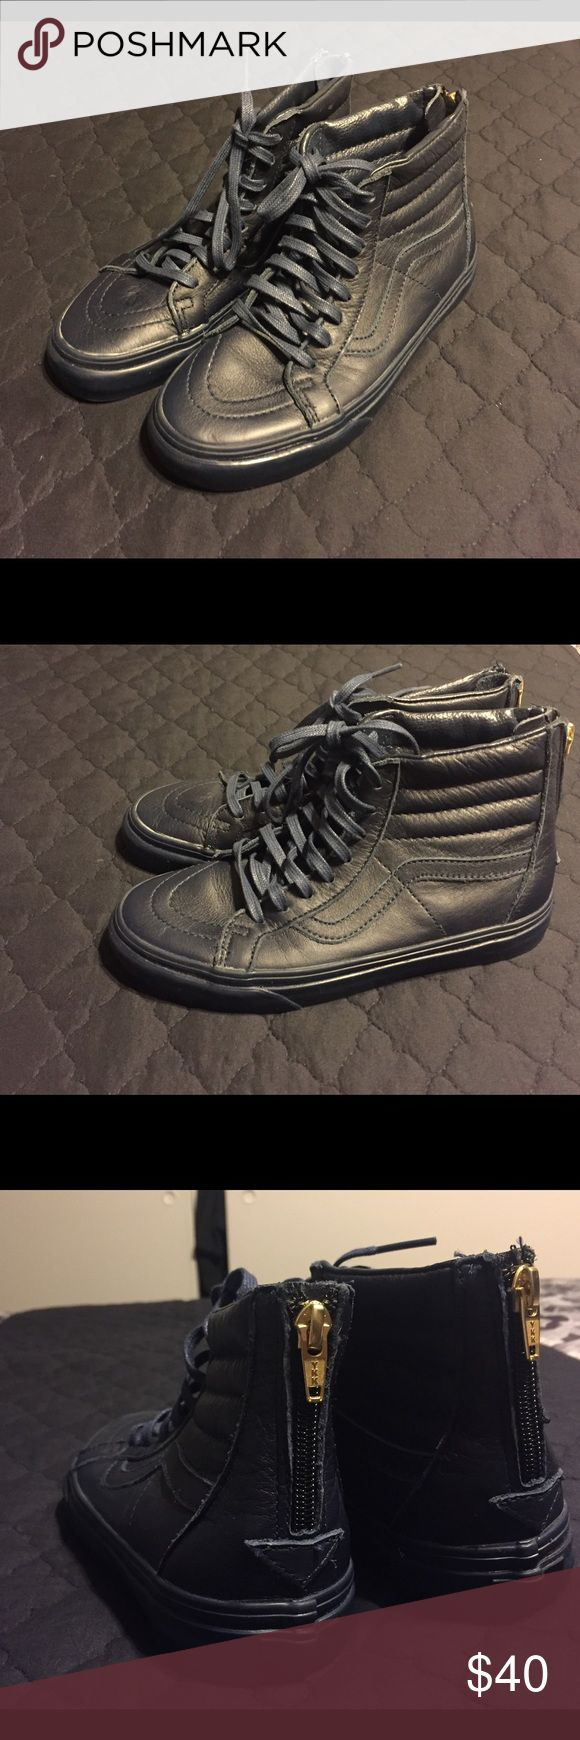 SK8-HI Vans Dark blue/navy blue all leather high top SK8 Vans with gold zipper. No box but will include a shoe bag. A bit of wear due to being stored with other shoes but never been worn. 4.5 in men, 6 in women. Original laces, very low price and in great overall condition! Willing to negotiate price! Vans Shoes Sneakers